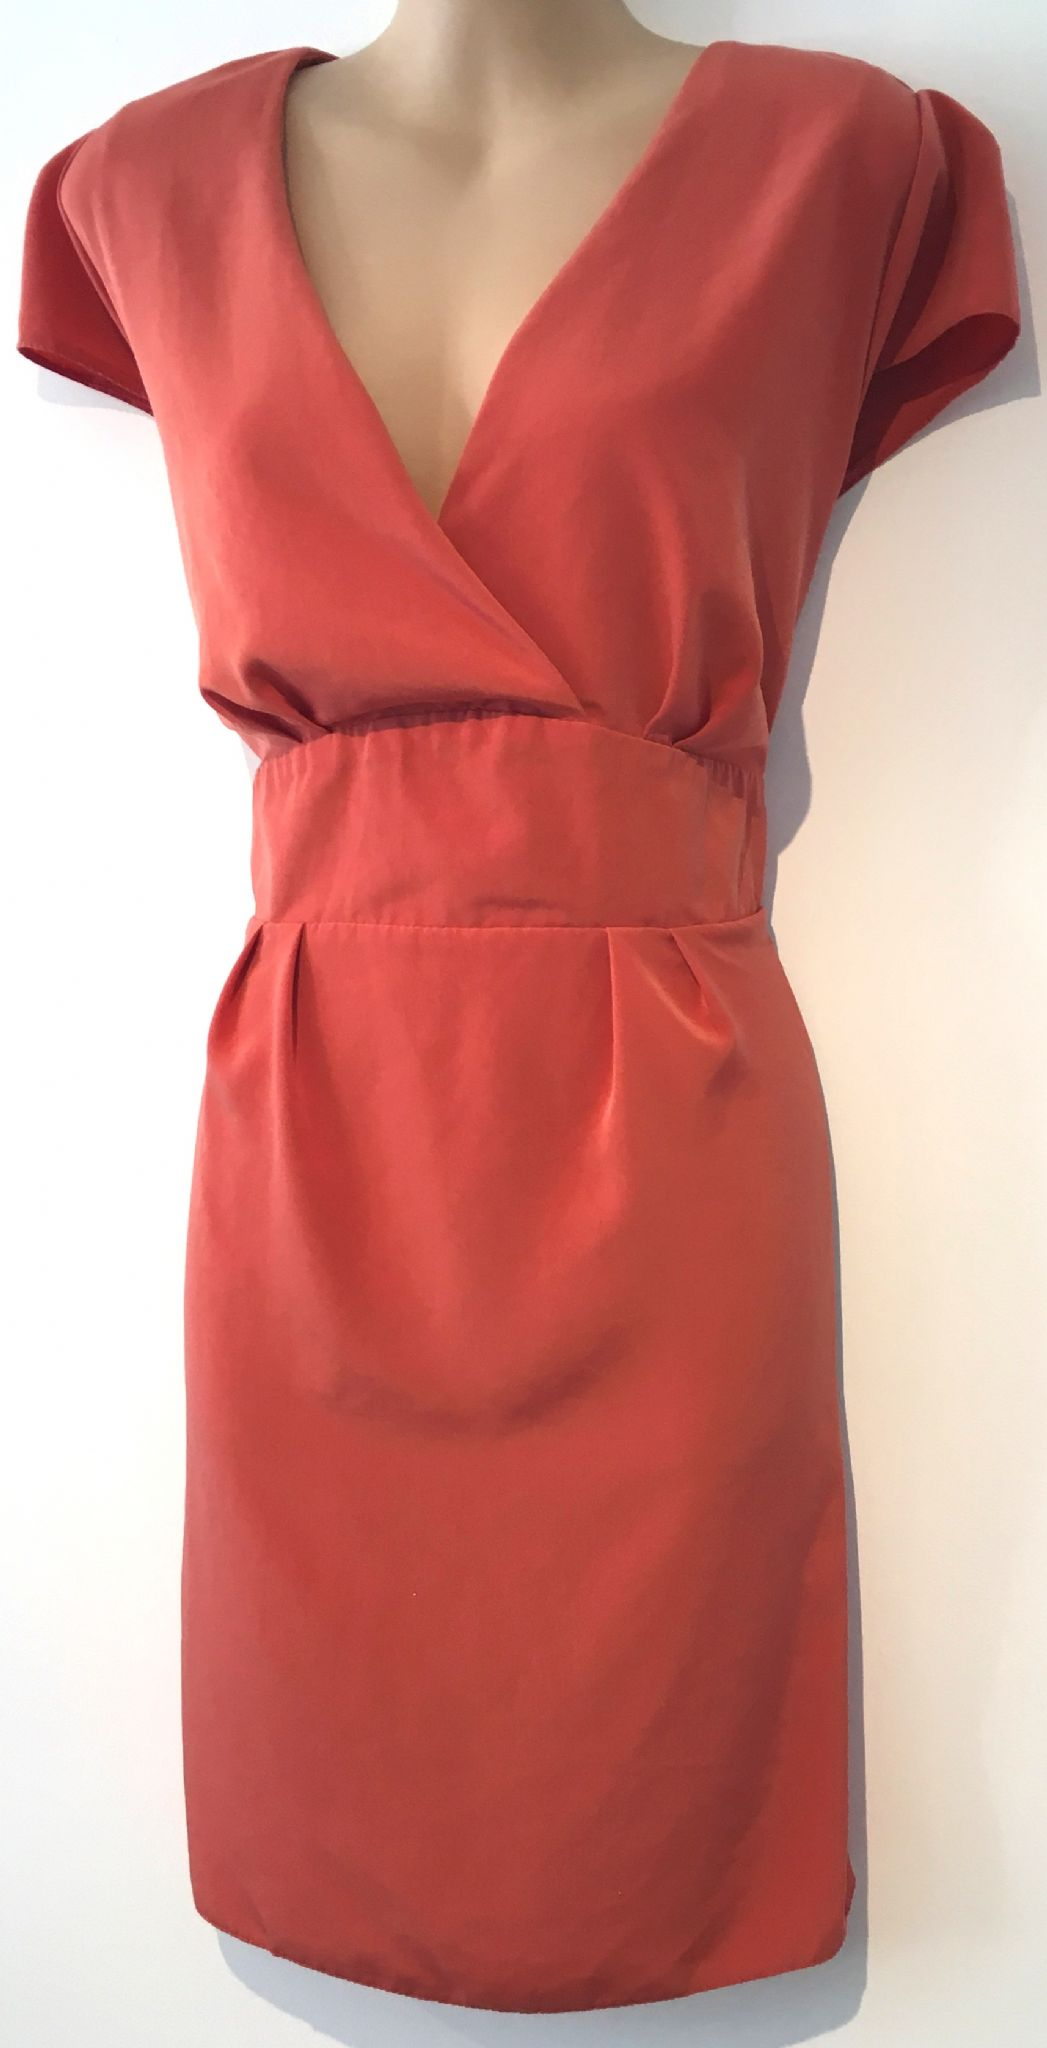 9c5c83958bc DOROTHY PERKINS ORANGE CROSS OVER TIE BACK TUNIC DRESS SIZE UK 18